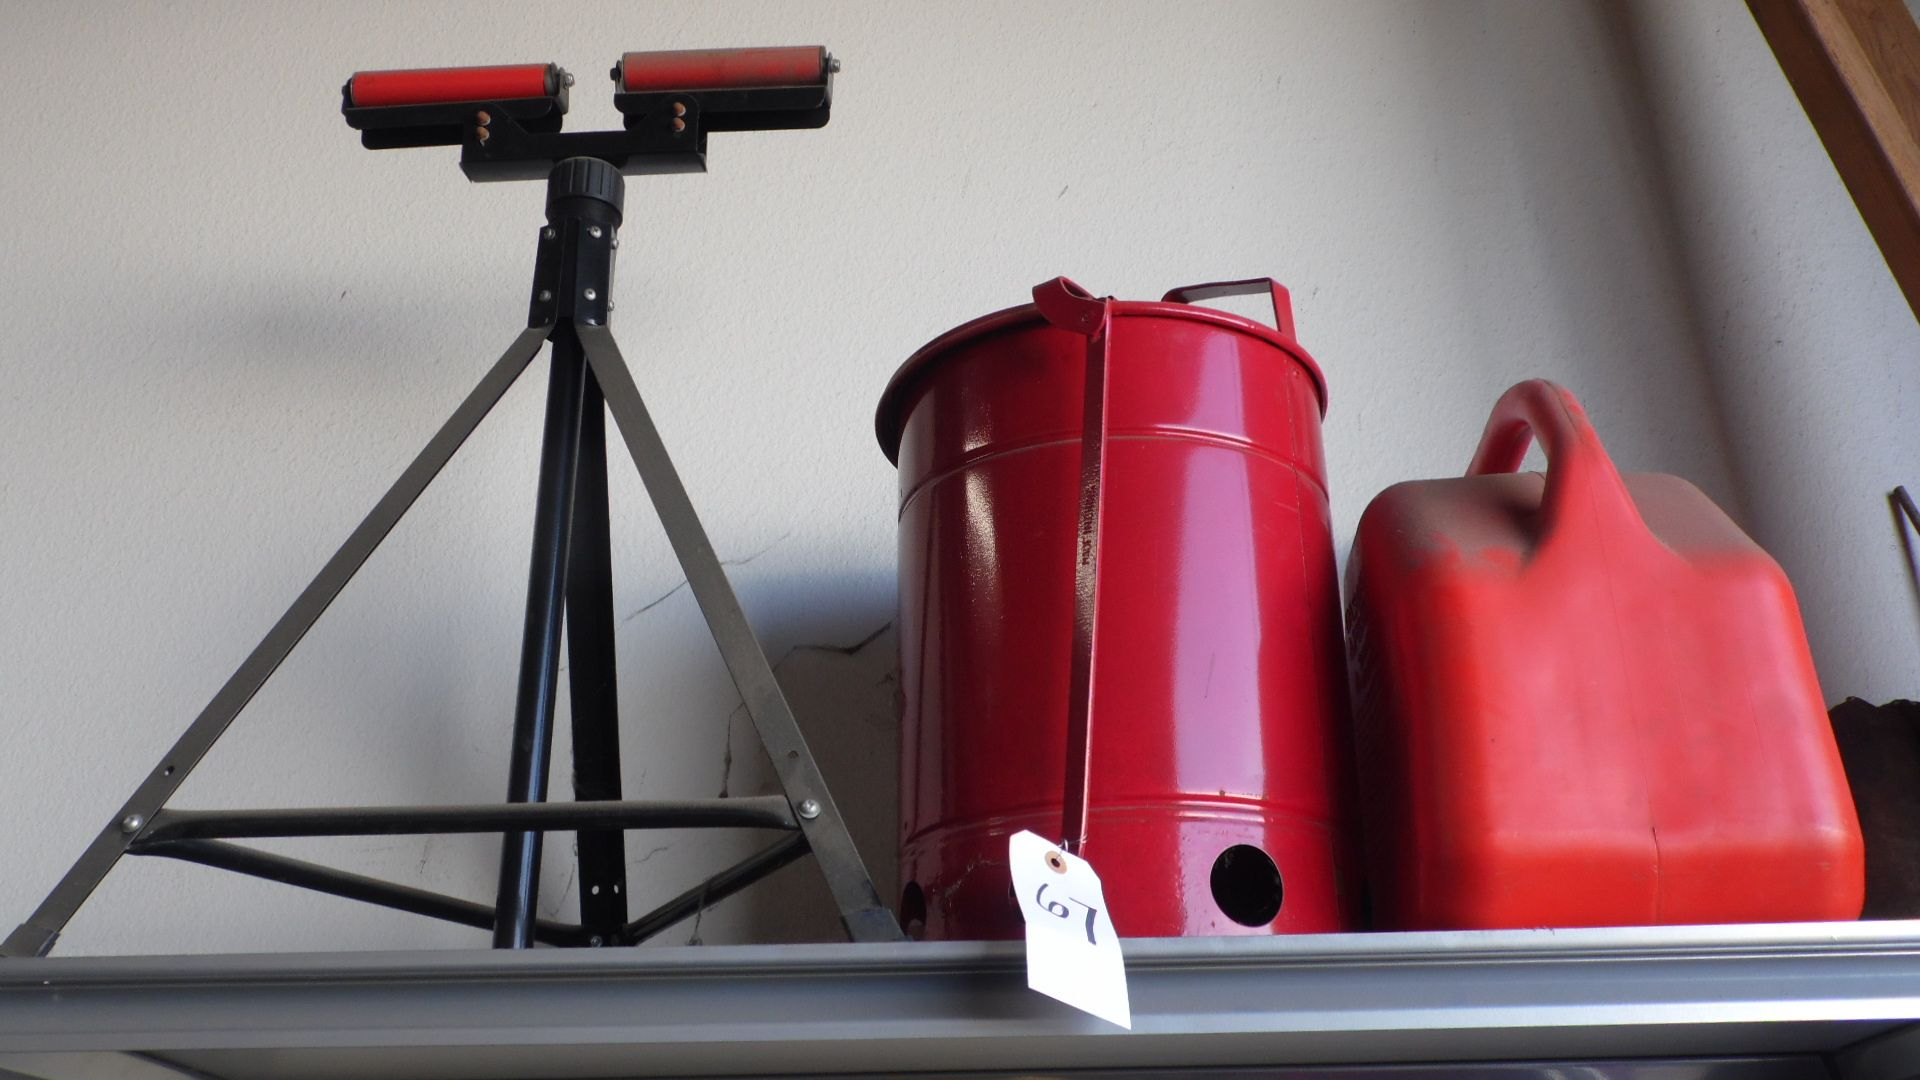 Lot 67 - STAND - GAS CAN - RAG CAN